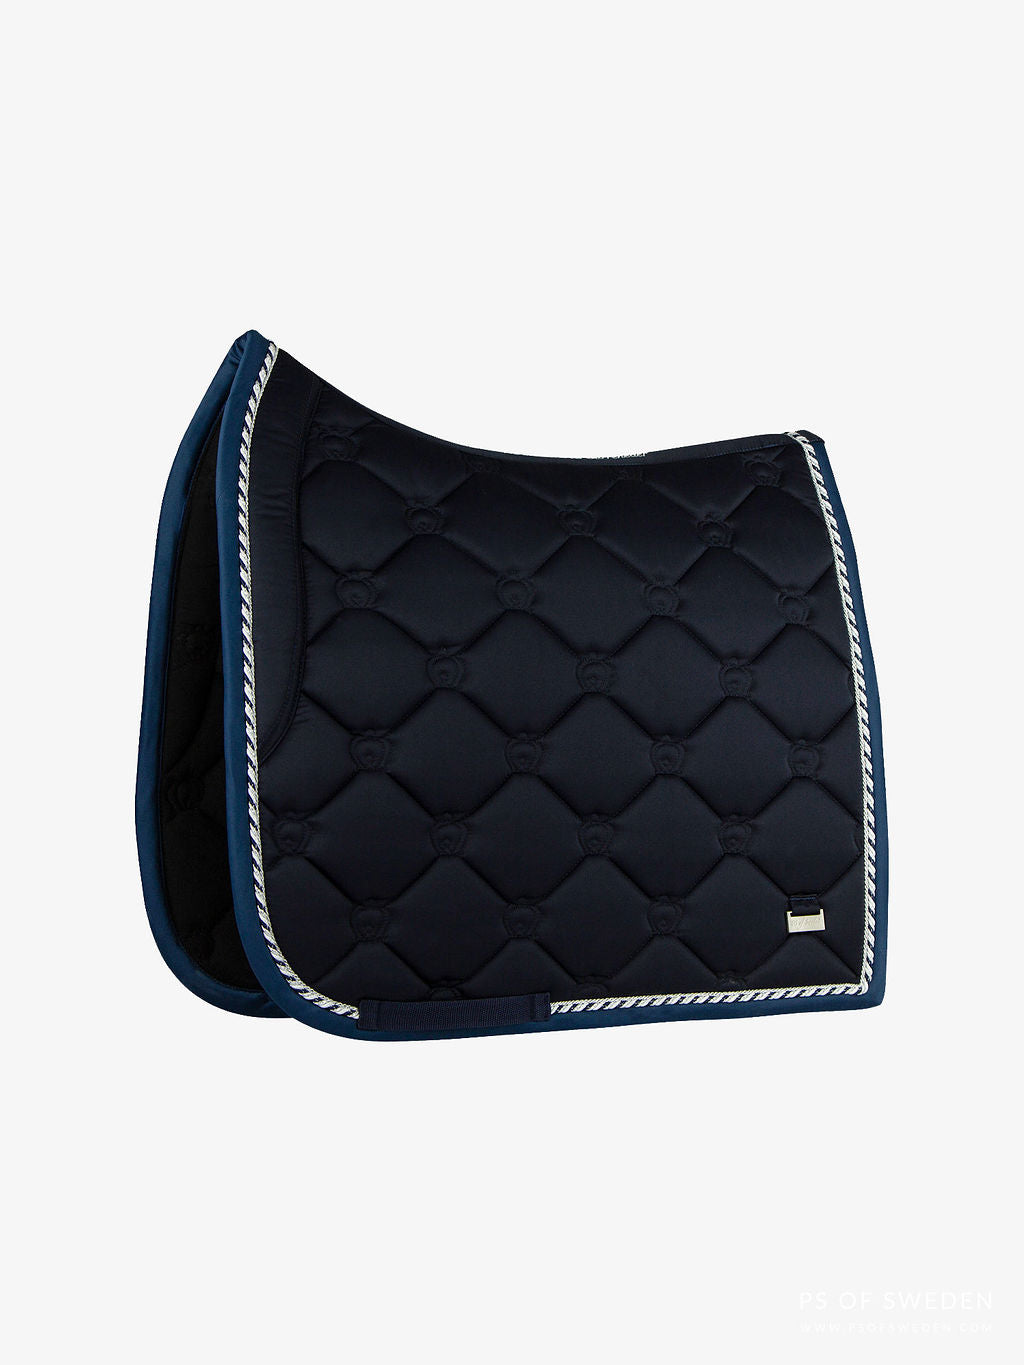 PS of Sweden AW20 Limited Edition Monogram Saddle Pad -MARINE - Divine Equestrian